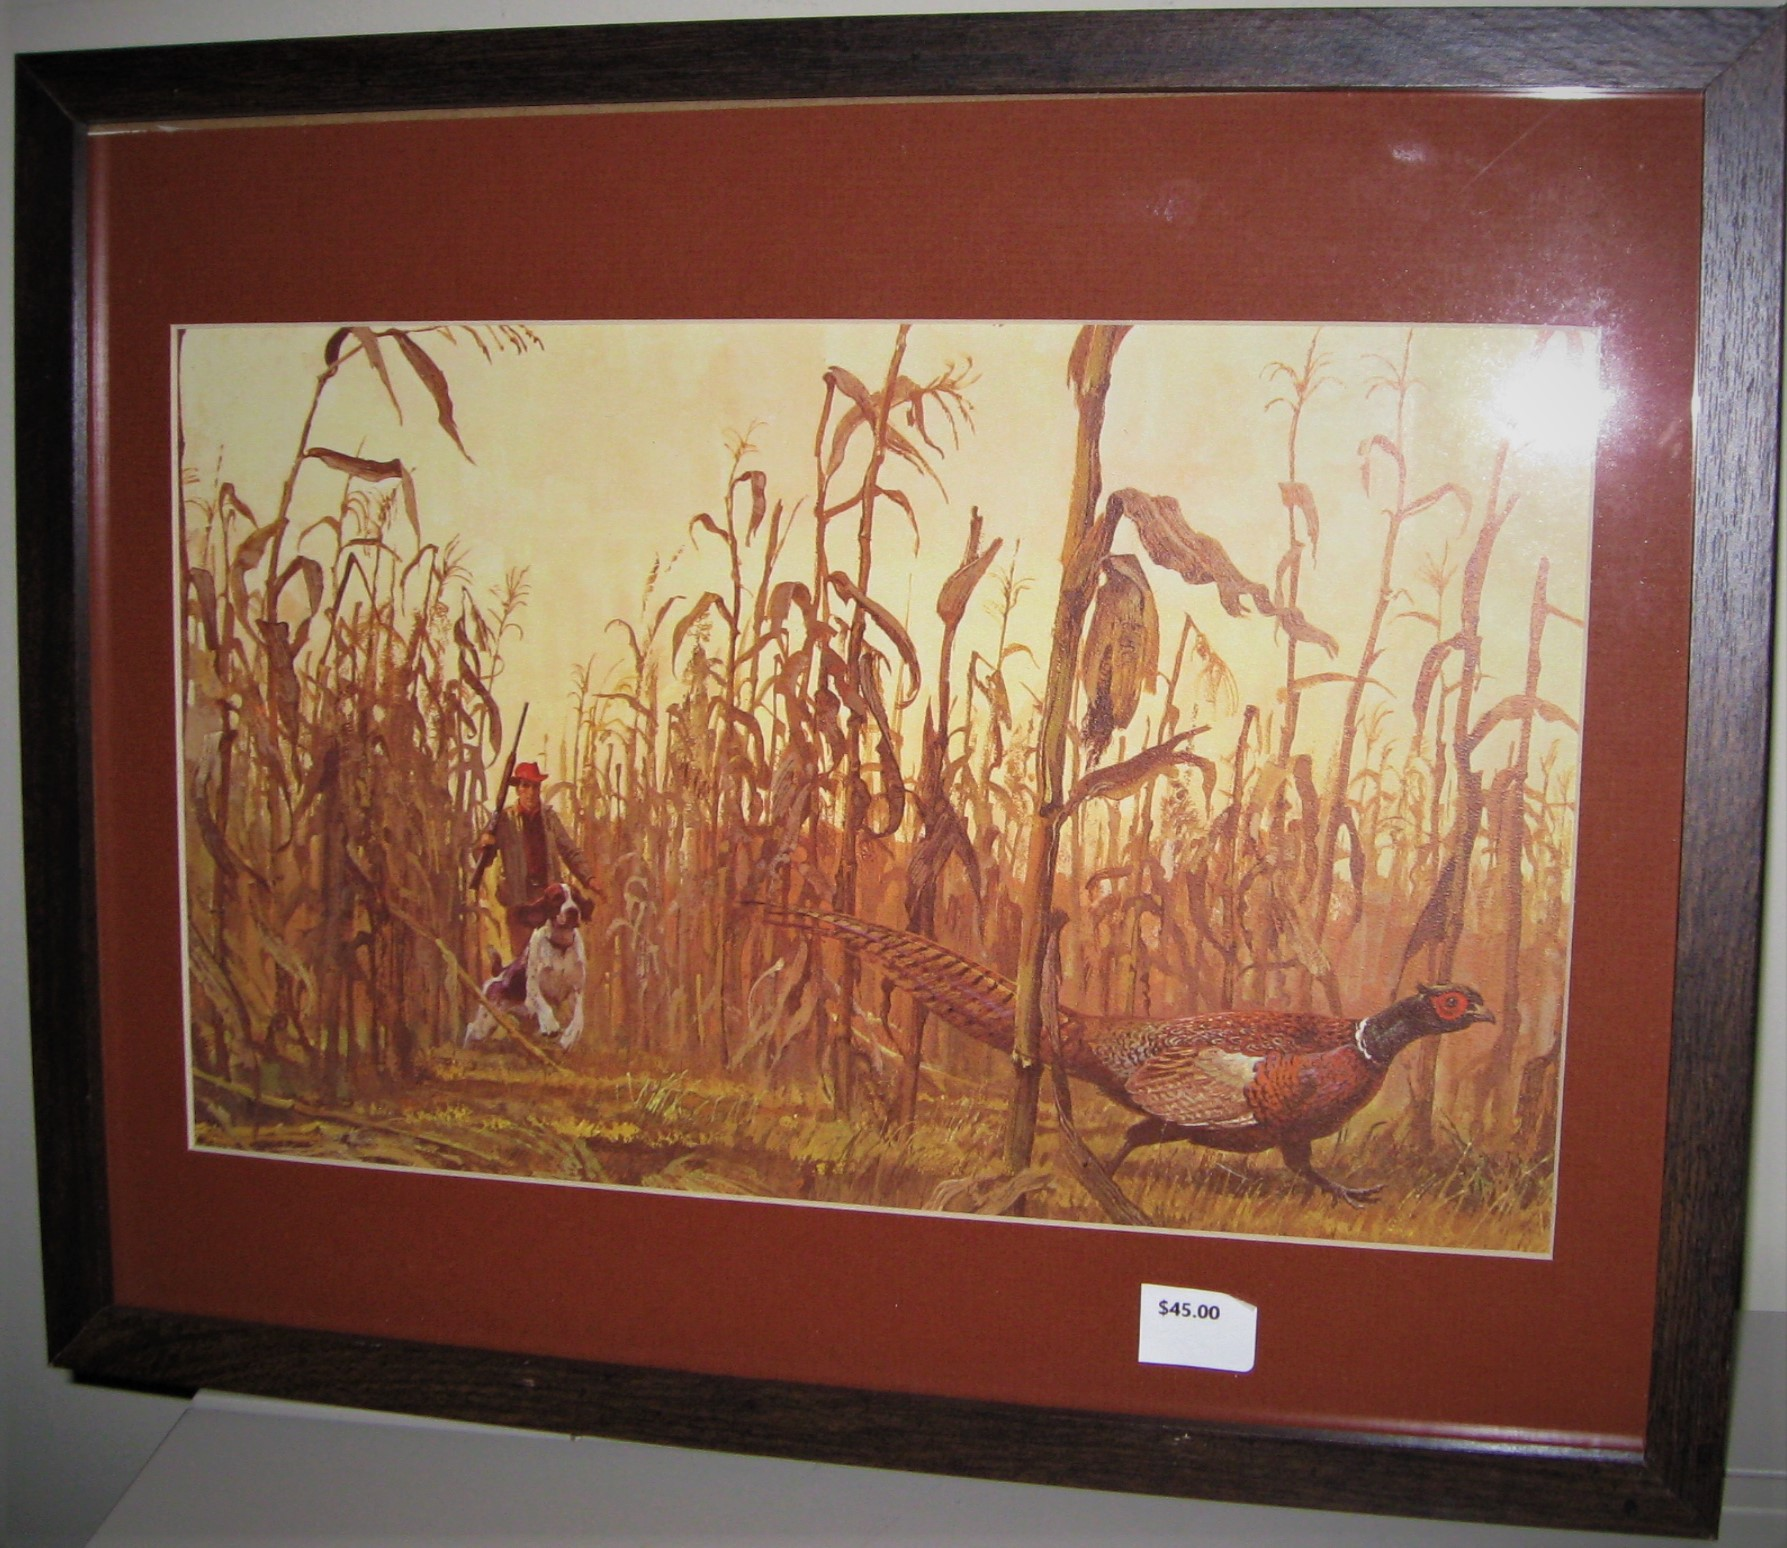 Image for VINTAGE PRINT OF HUNTING SCENE IN CORN FIELD, HUNTER, DOG AND PHEASANT,